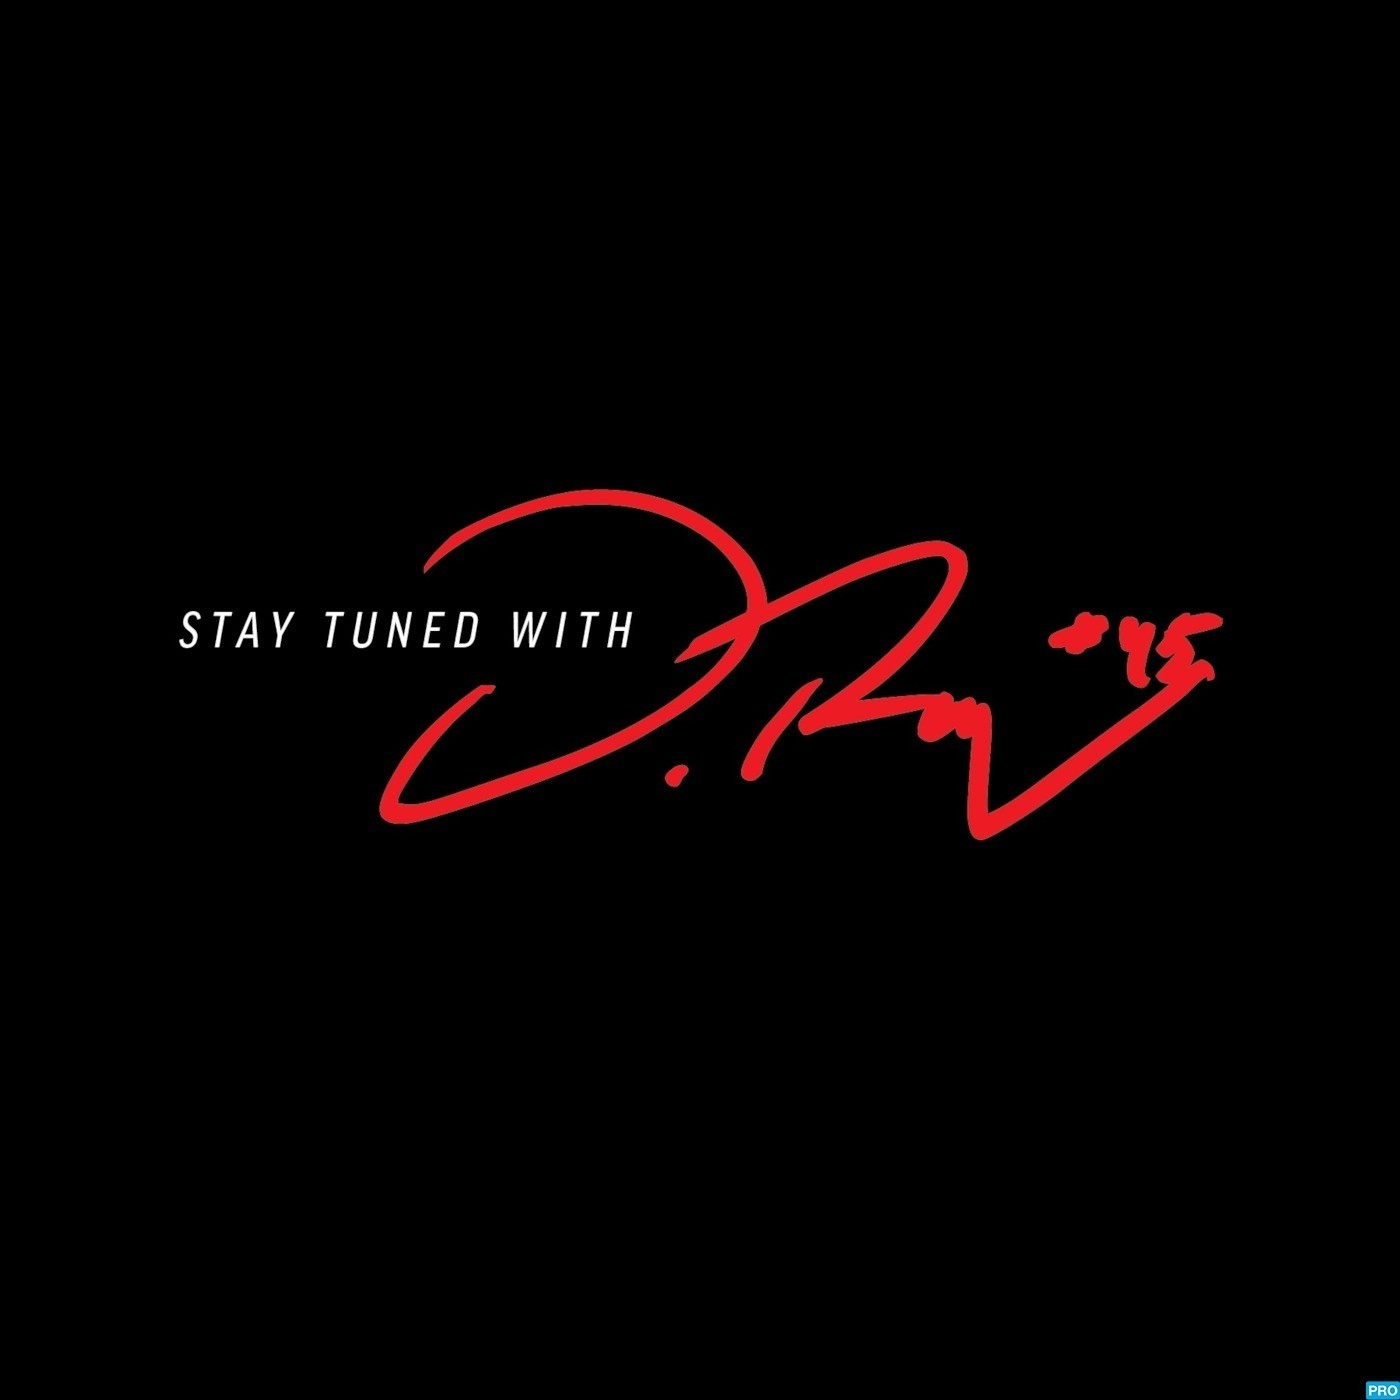 Stay Tuned with D.Rey featuring Avery Marz